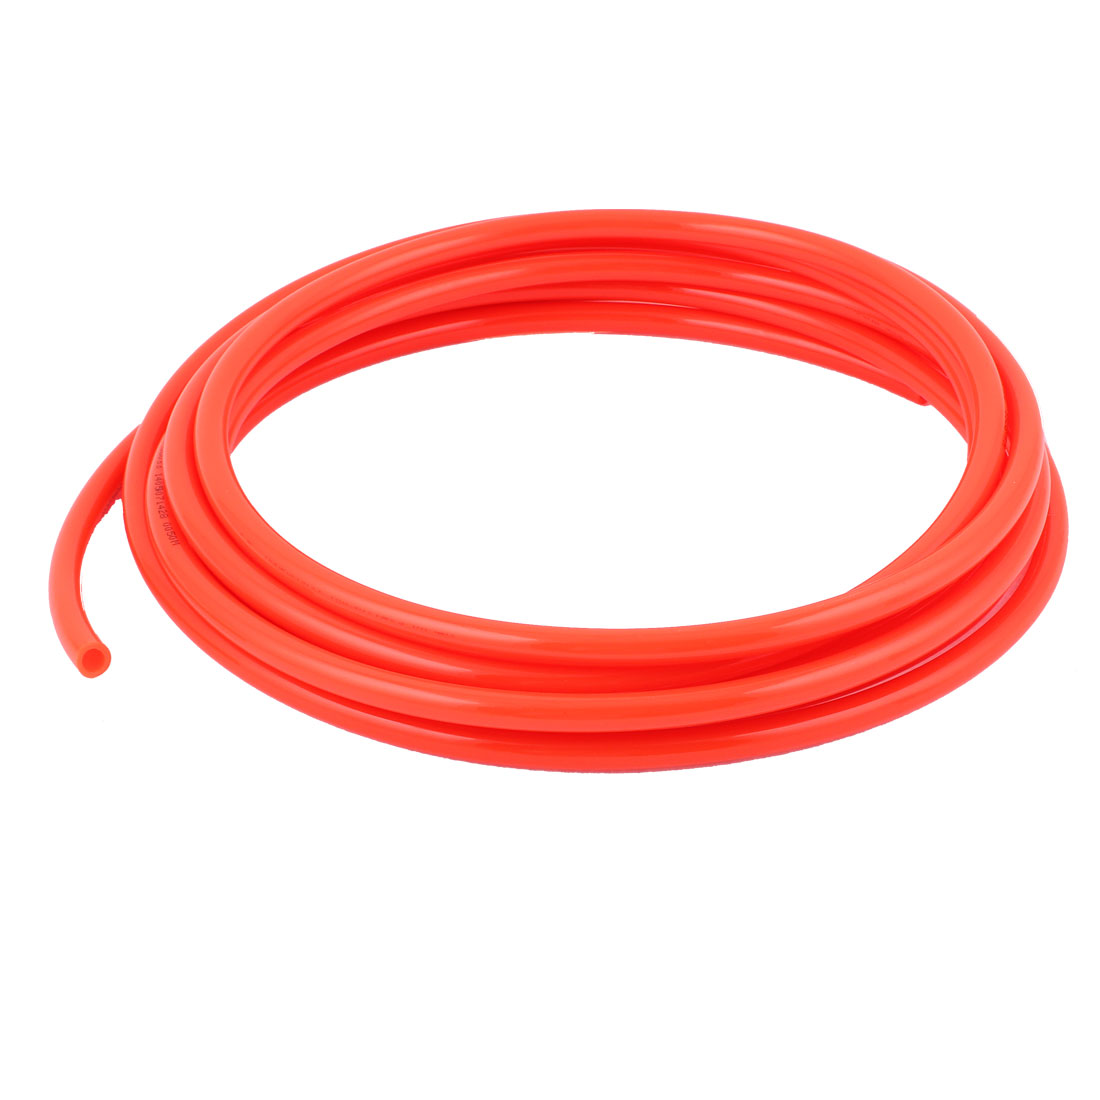 10mm OD x 6.5mm ID PU Pneumatic Air Tubing Pipe Hose 6 Meters Red